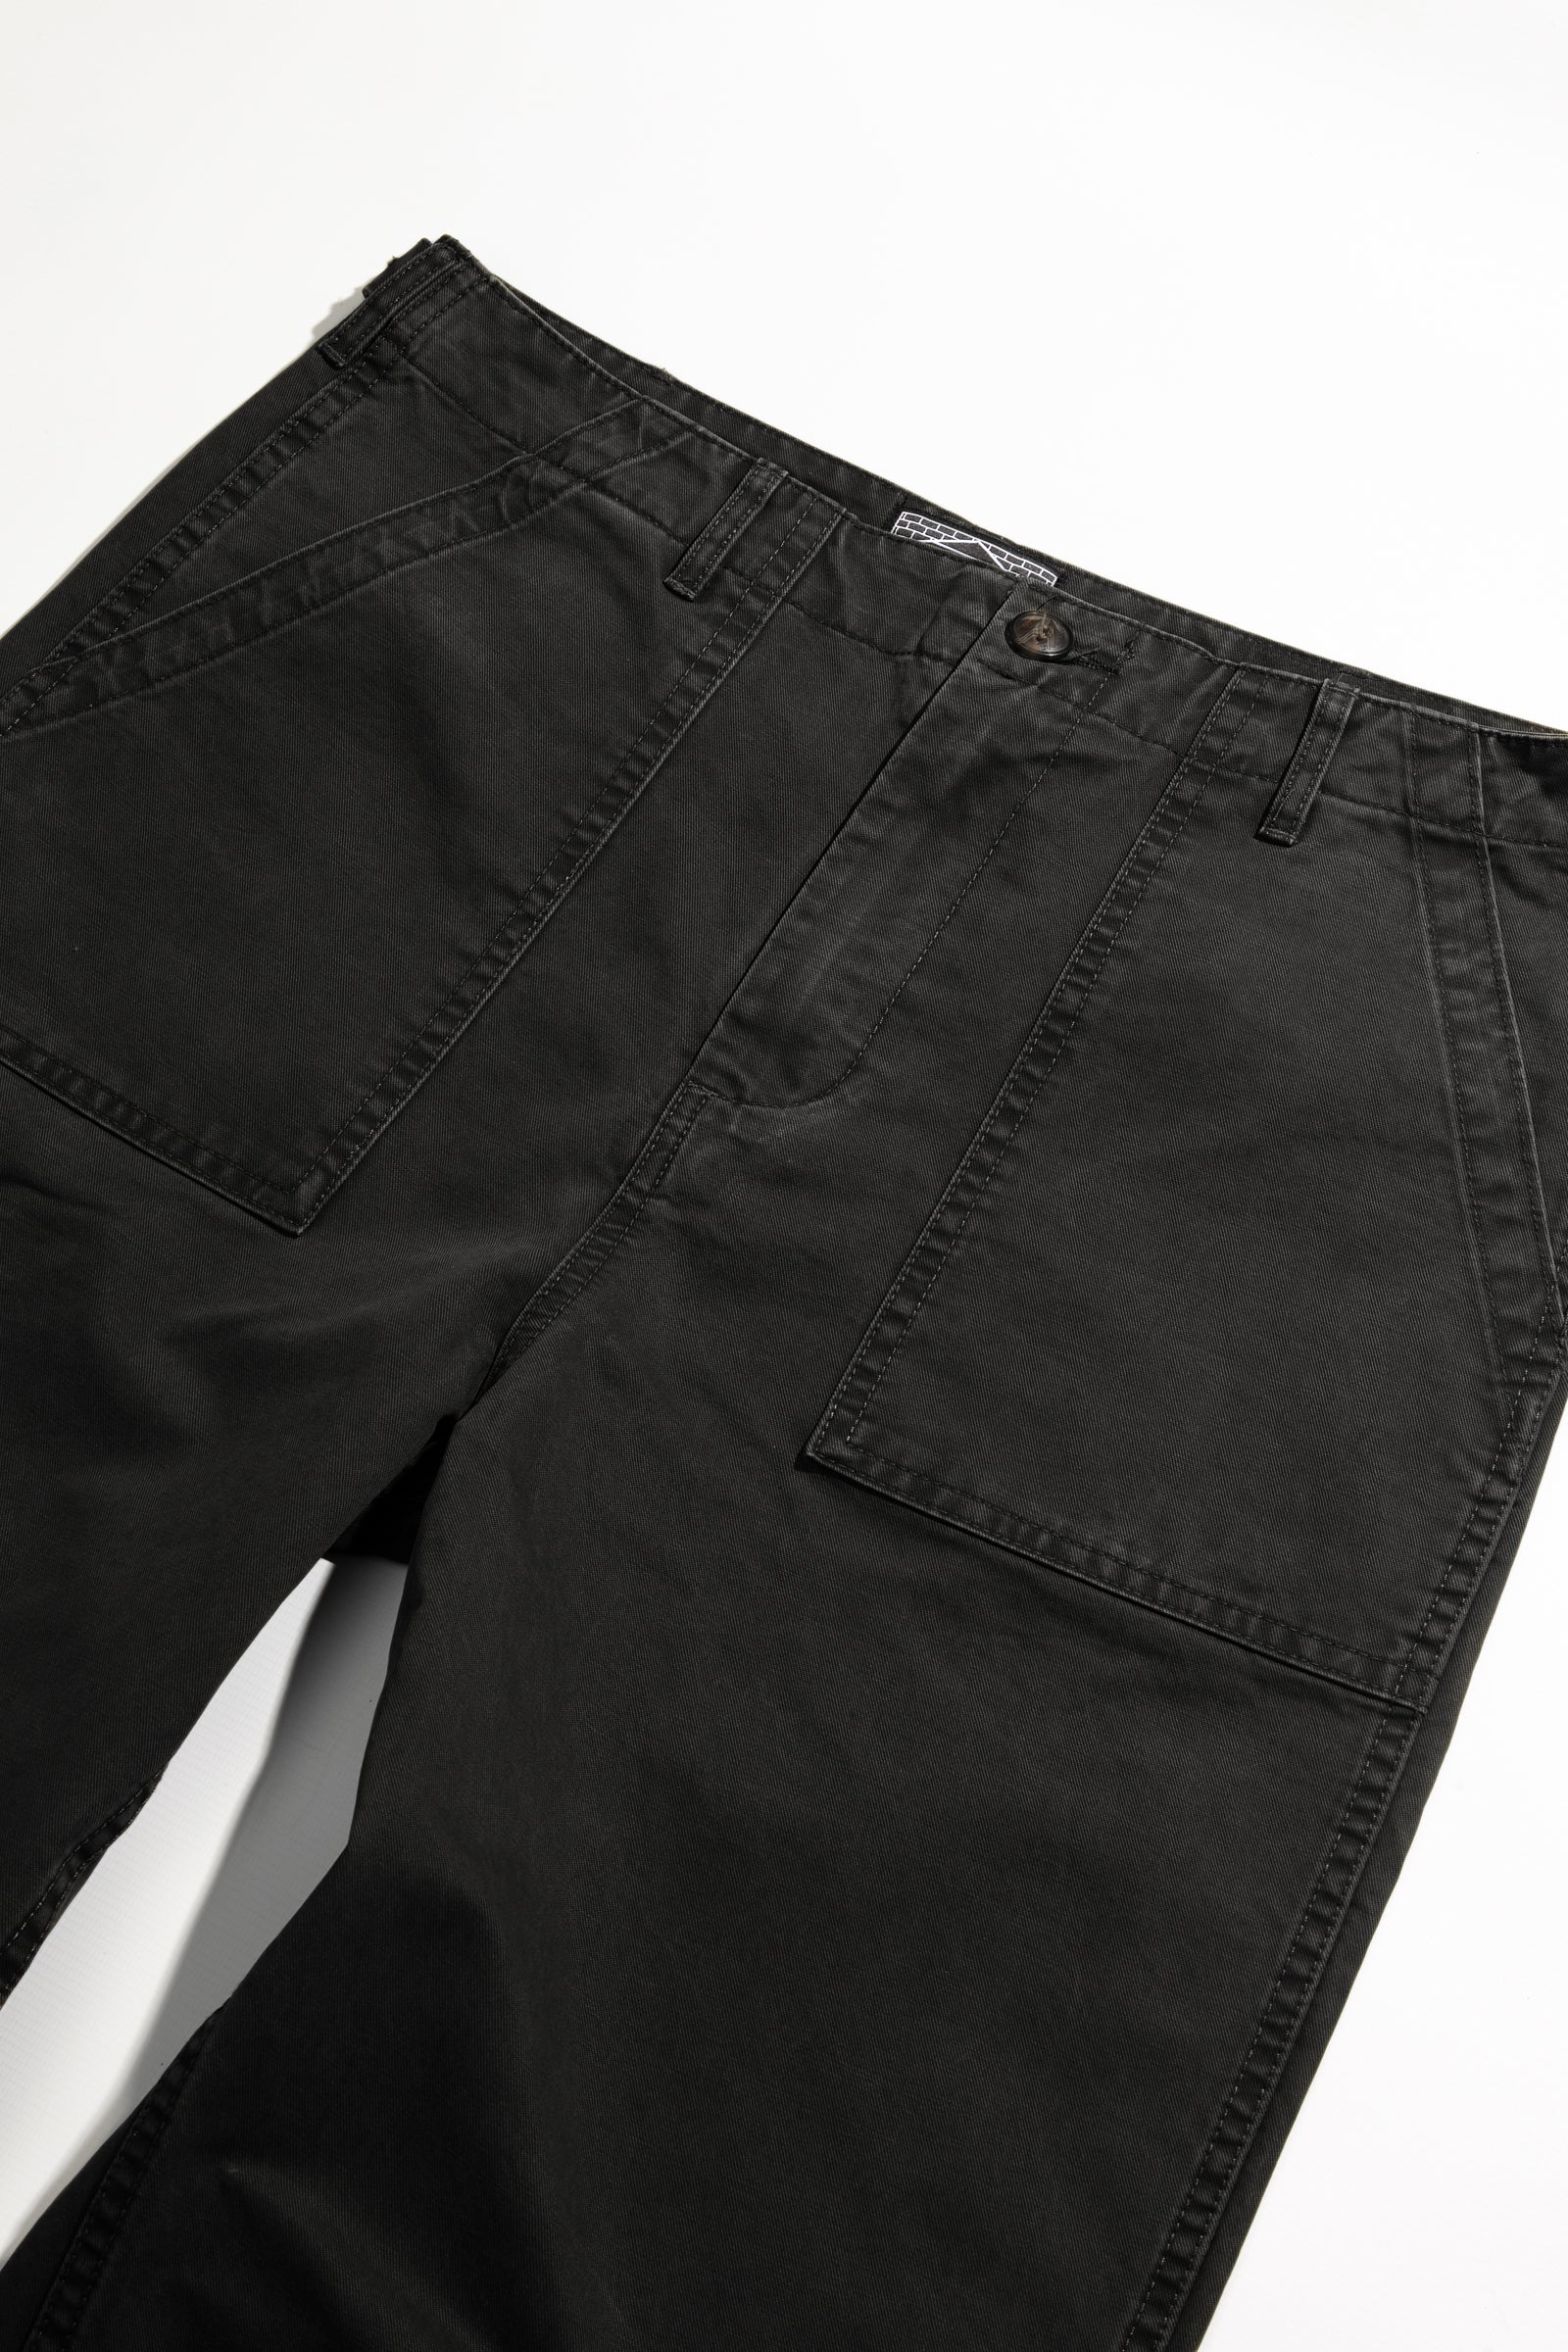 Blacksmith - Sowing Field Pants - Black